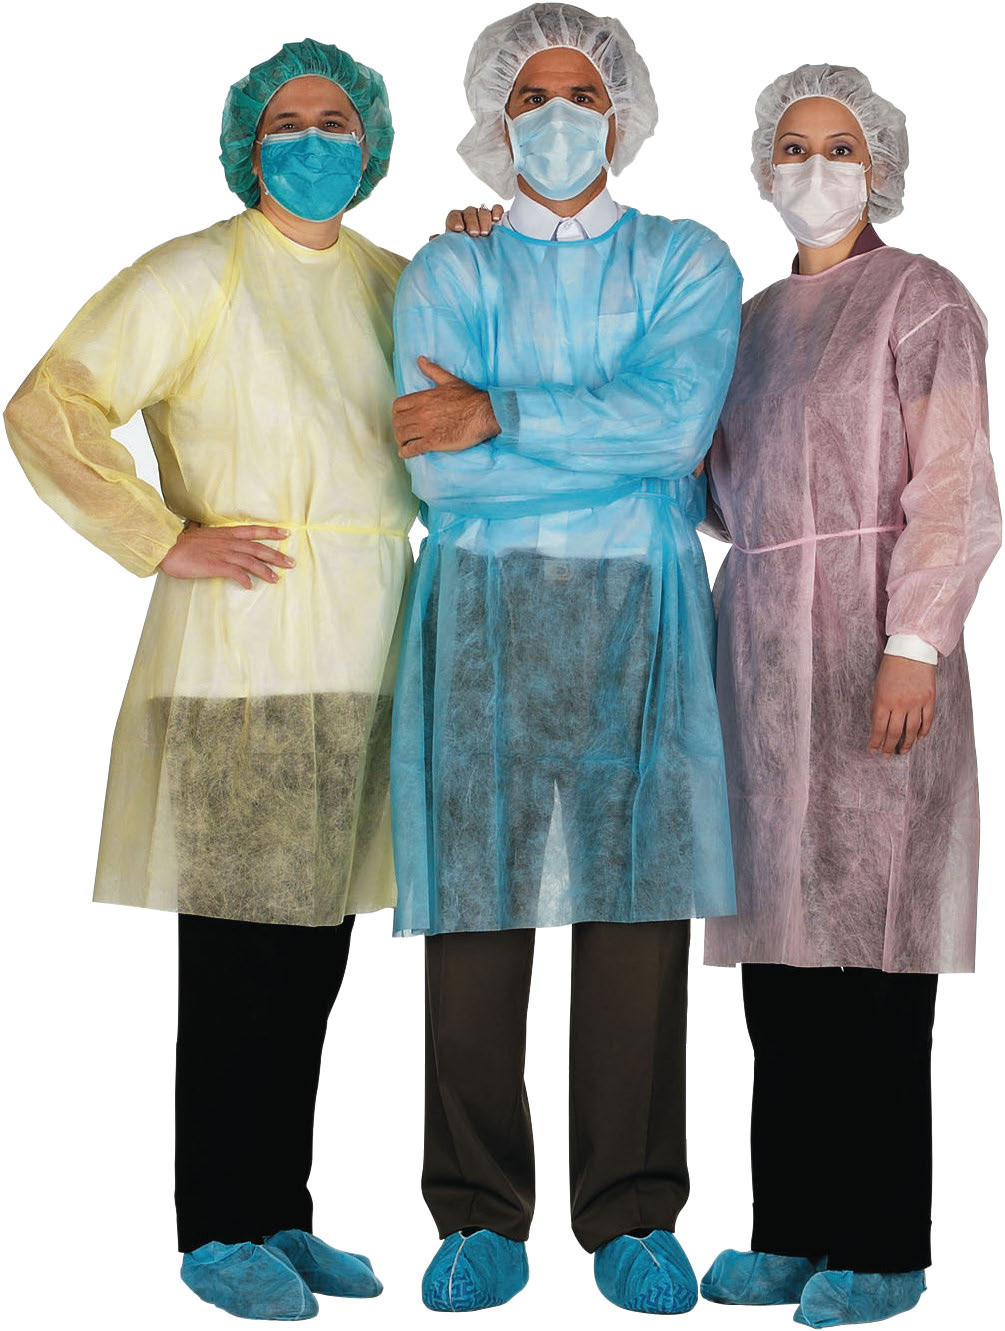 UltidentBrand Disposable Gowns - Isolation Gowns - Apparel, Masks ...